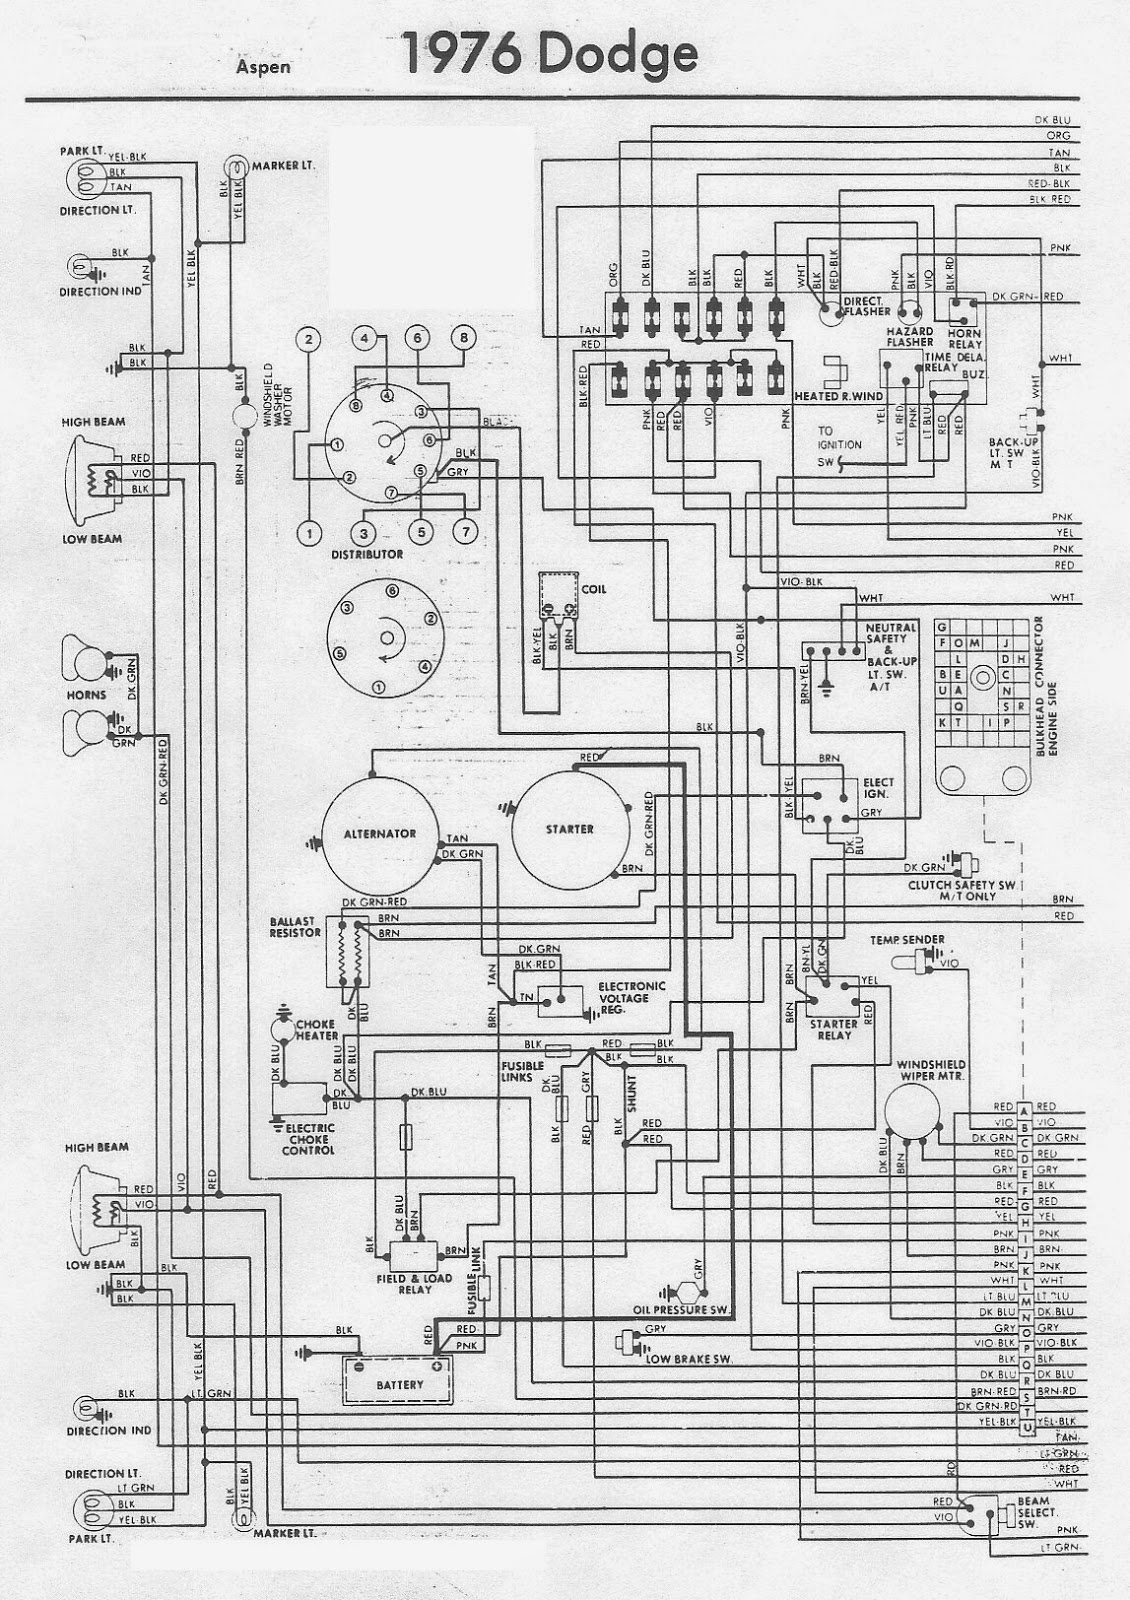 hight resolution of wiring diagram electrical system circuit 1976 dodge aspen user guide 1979 dodge aspen wiring diagram 1979 dodge aspen wiring diagram